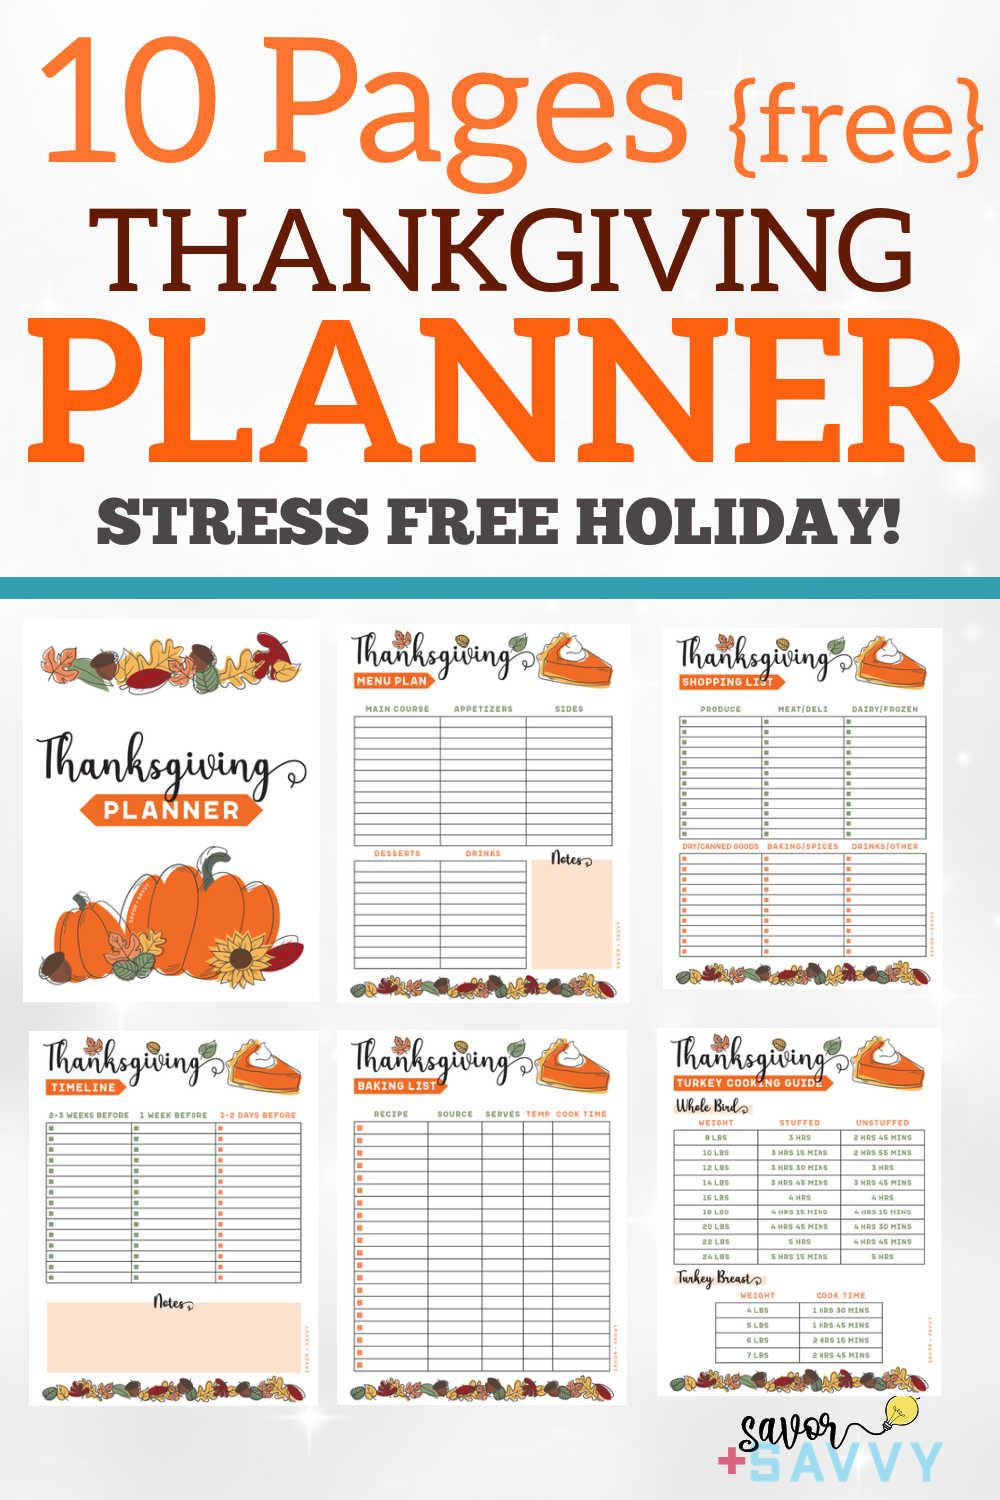 Organize Your Thanksgiving Meal With This Printable Planner In 2020 Thanksgiving Planner Printable Planner Stress Free Thanksgiving